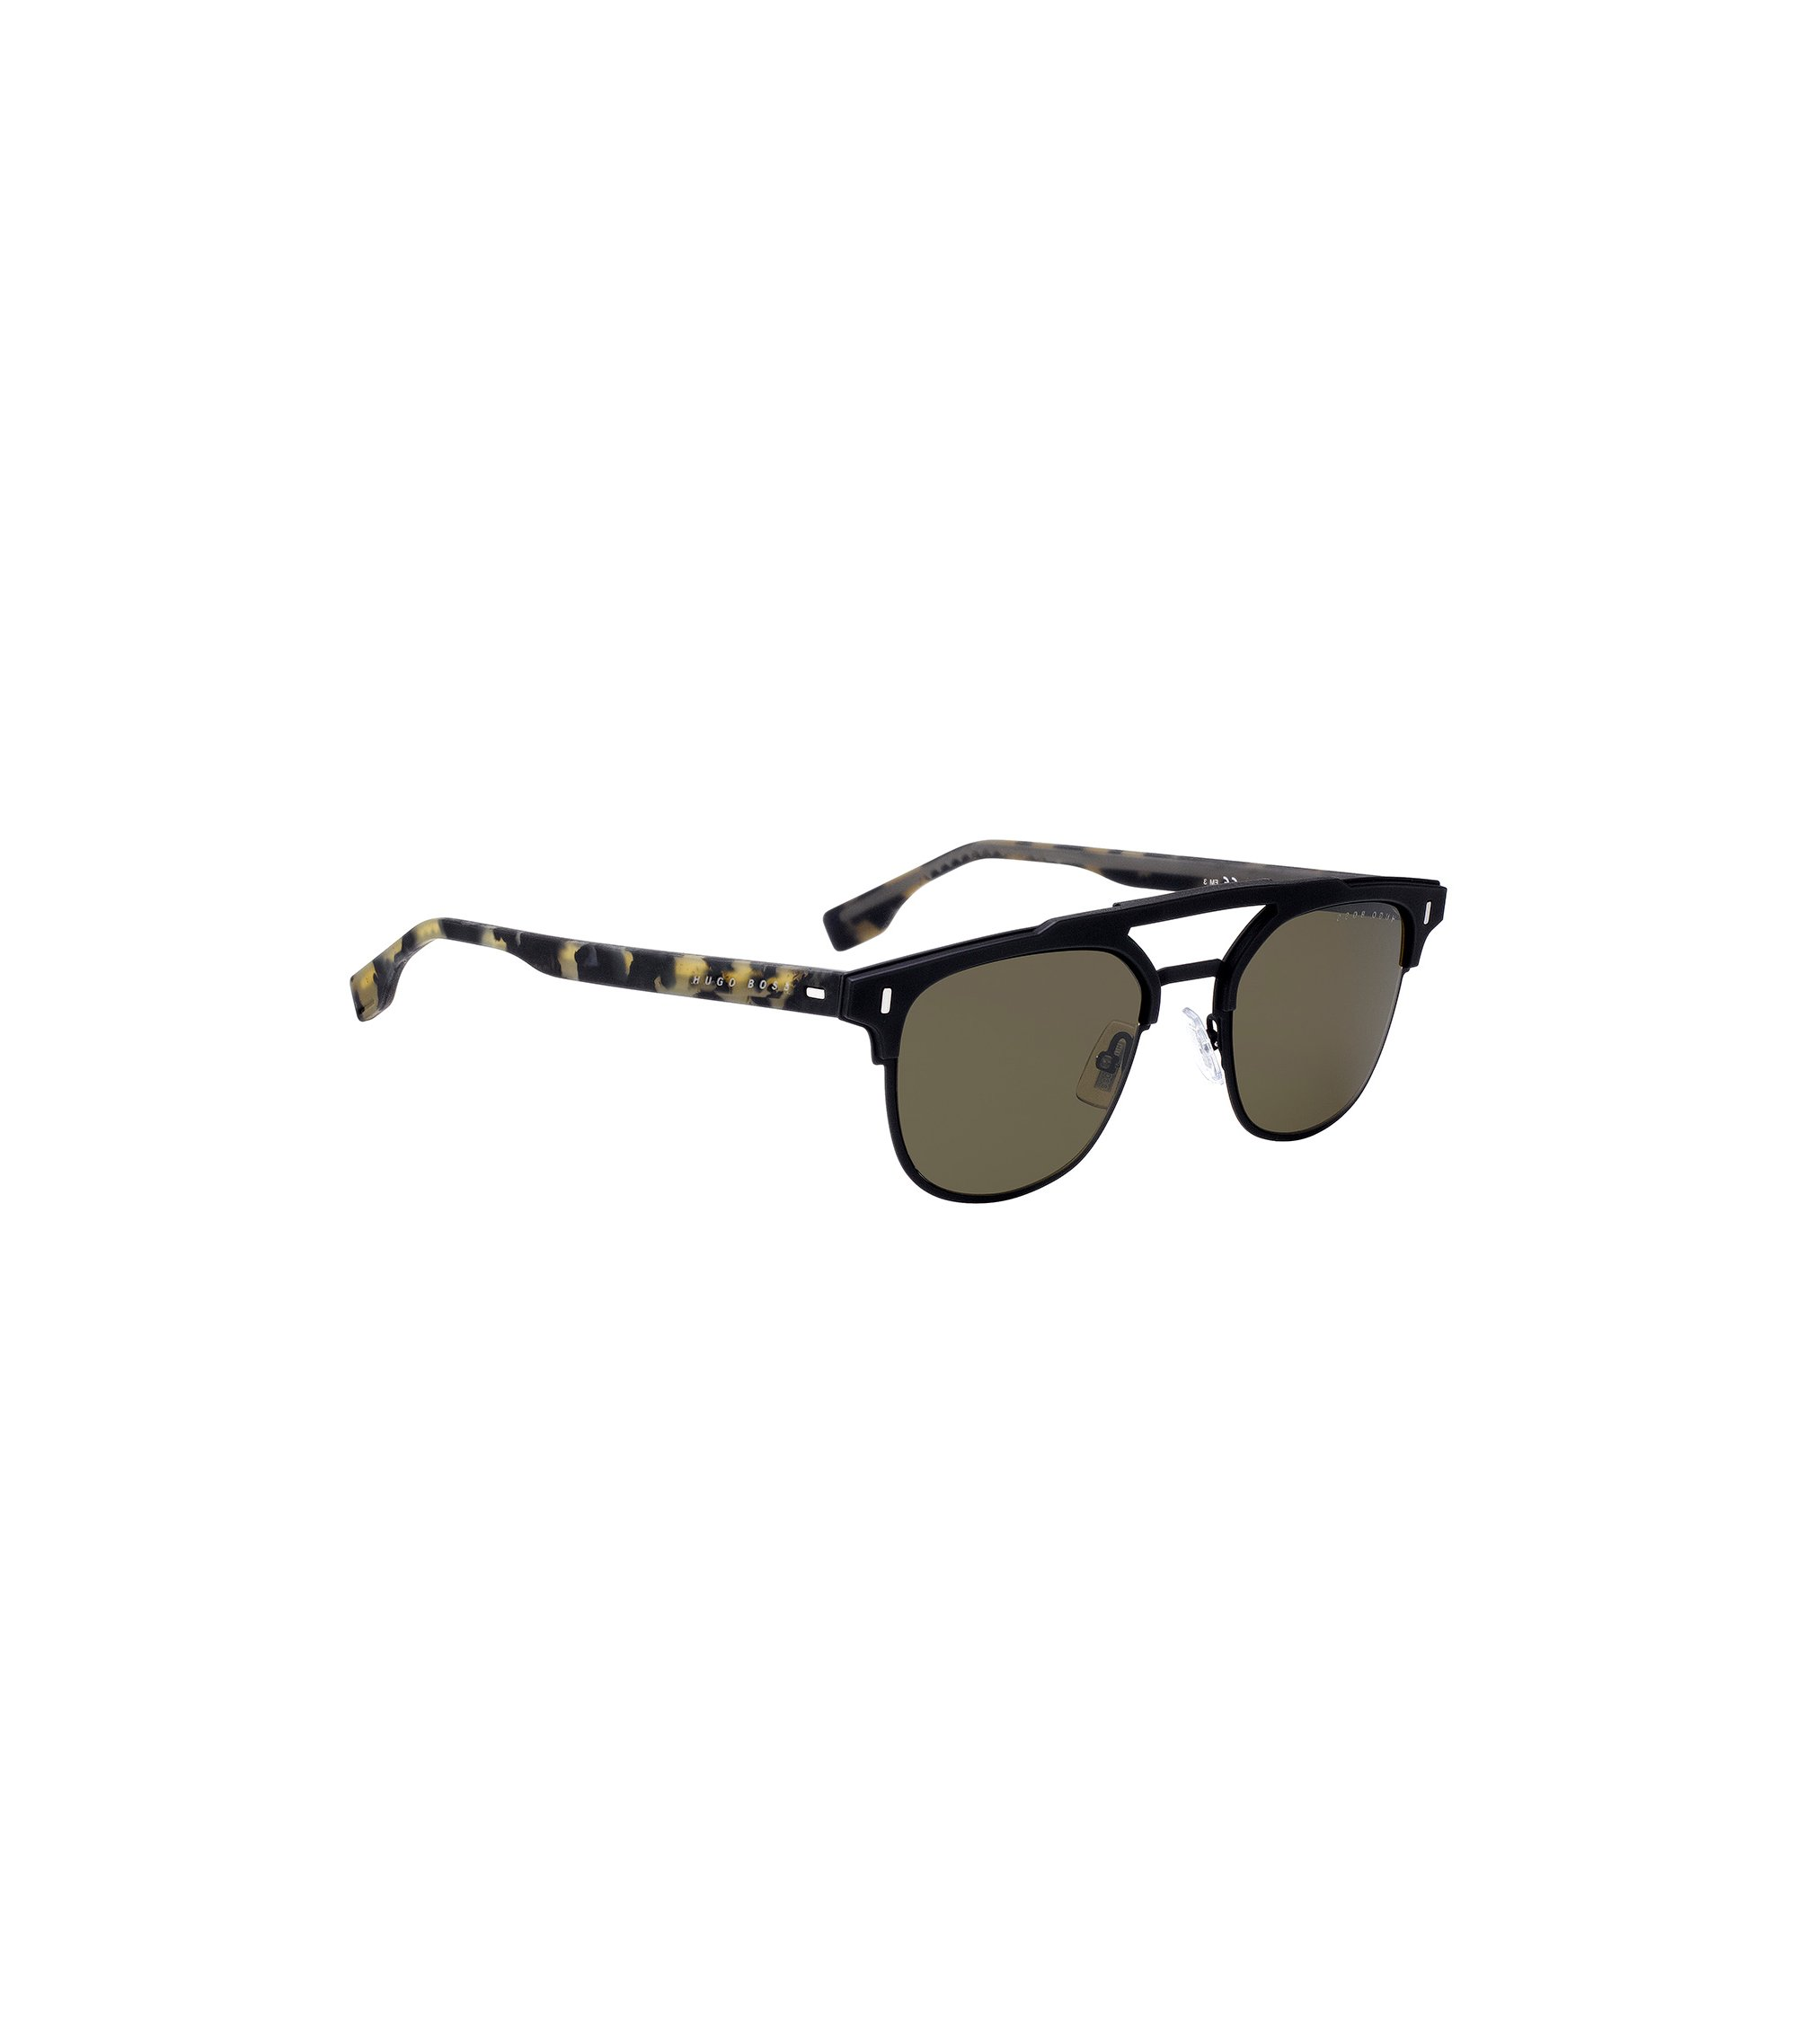 Black double-bridge sunglasses with rubberised Havana temples, Patterned